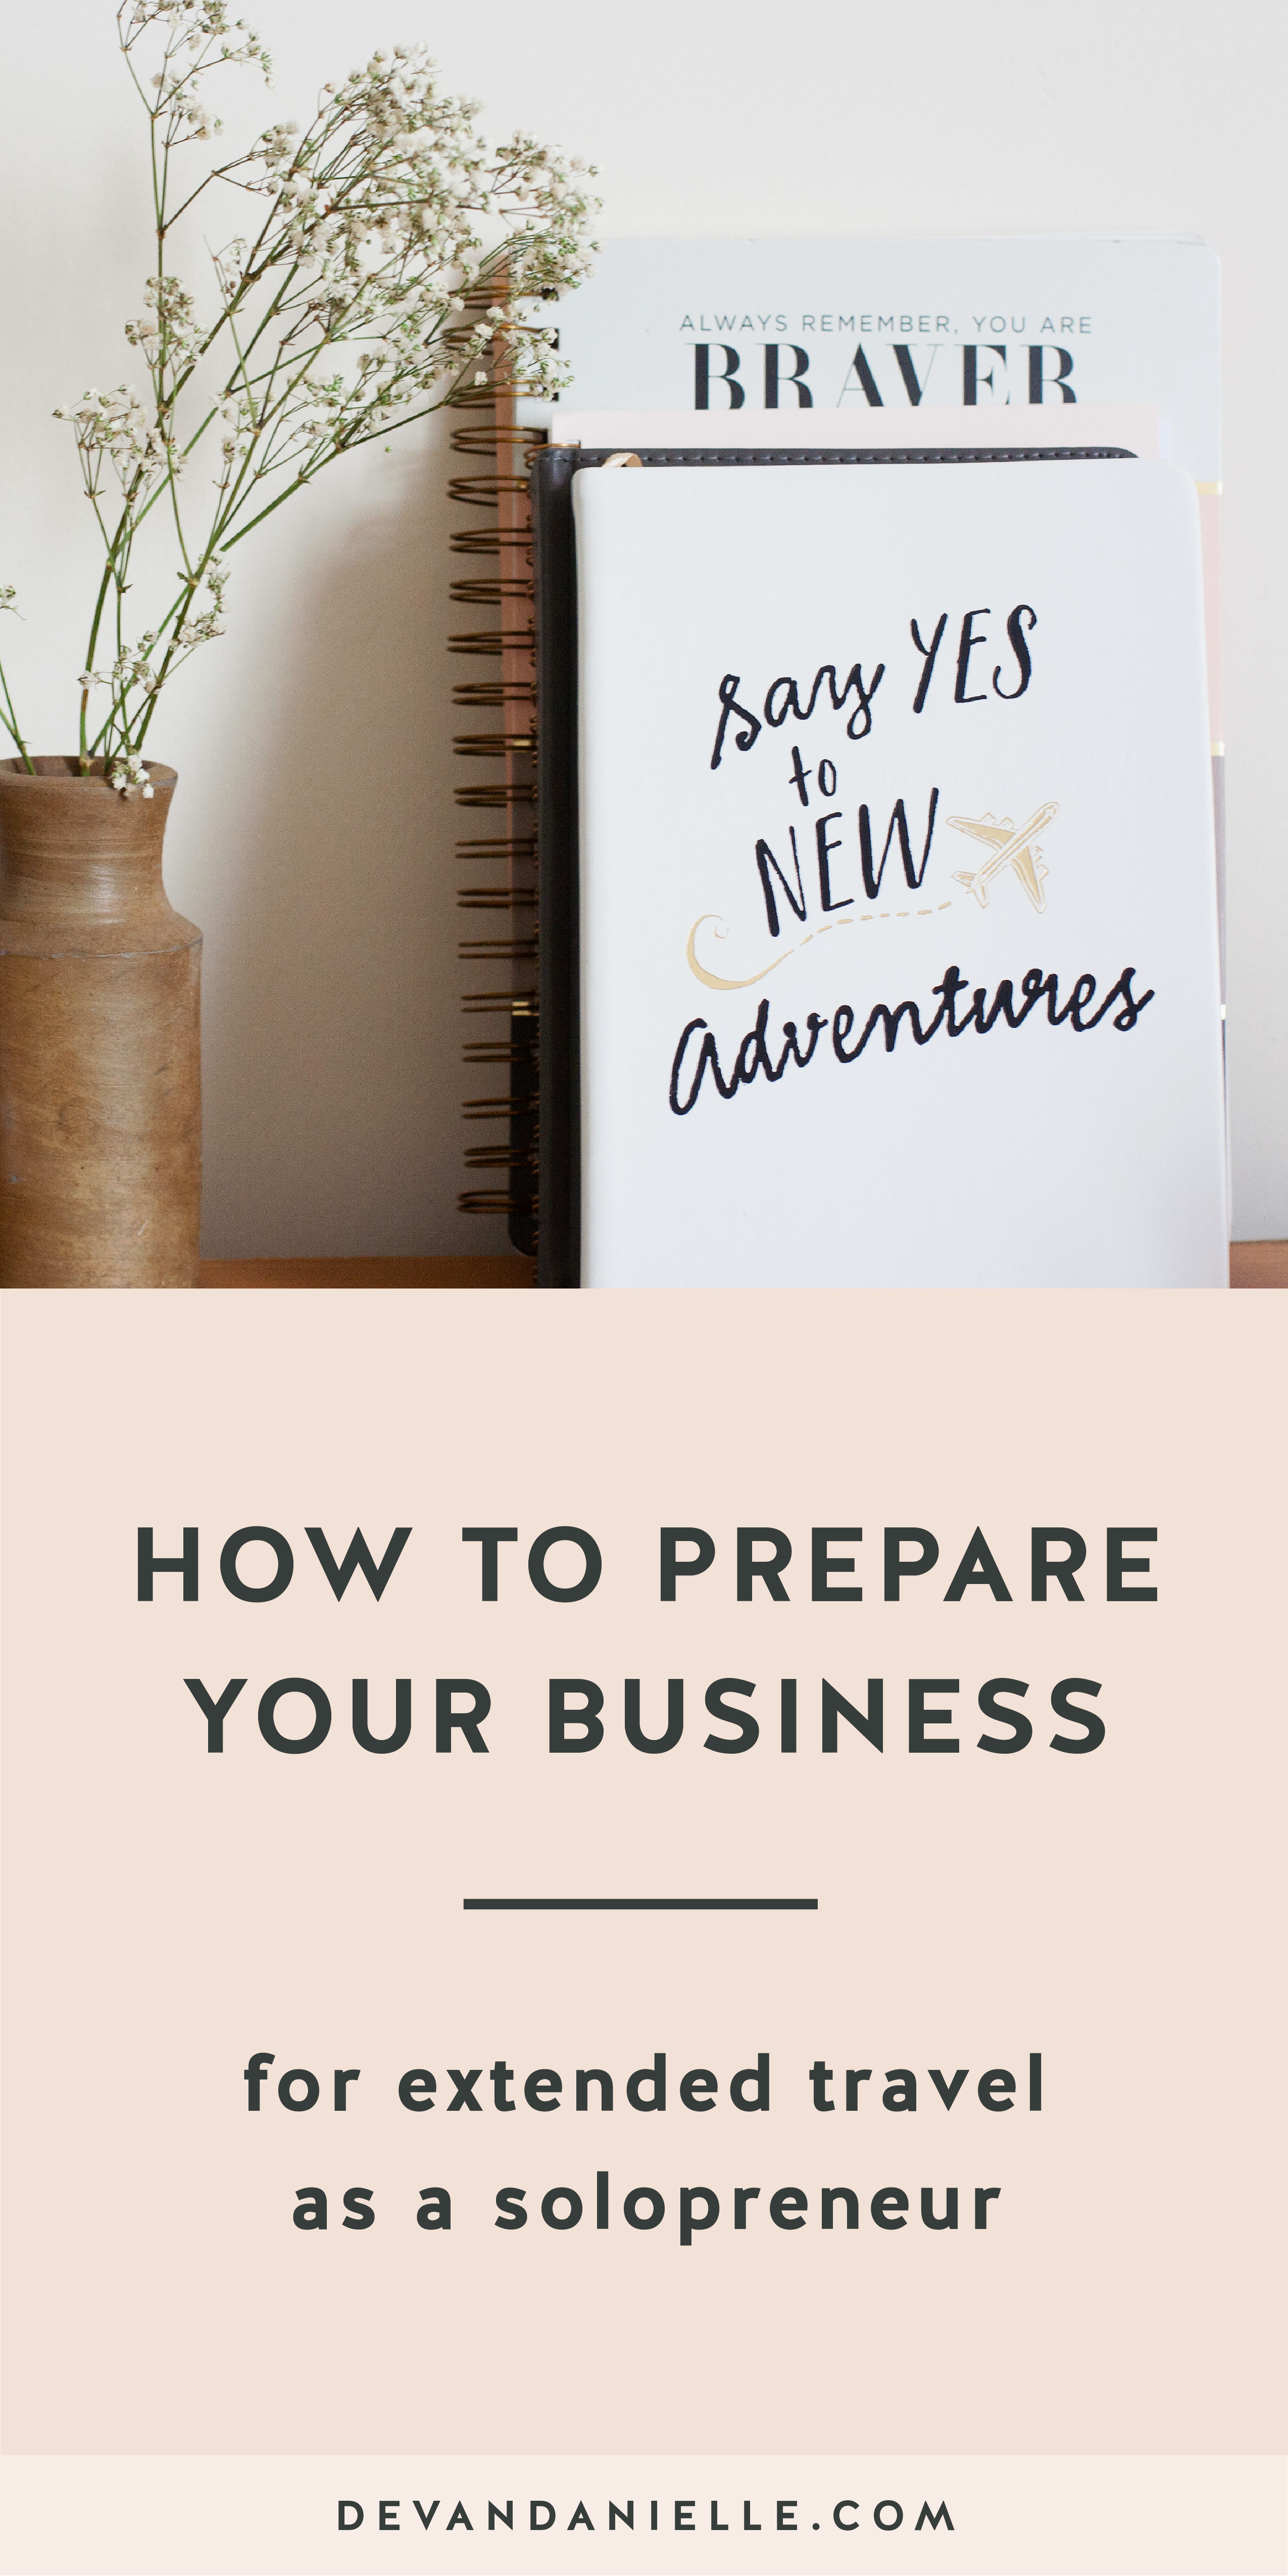 How to Prepare Your Business For Extended Travel